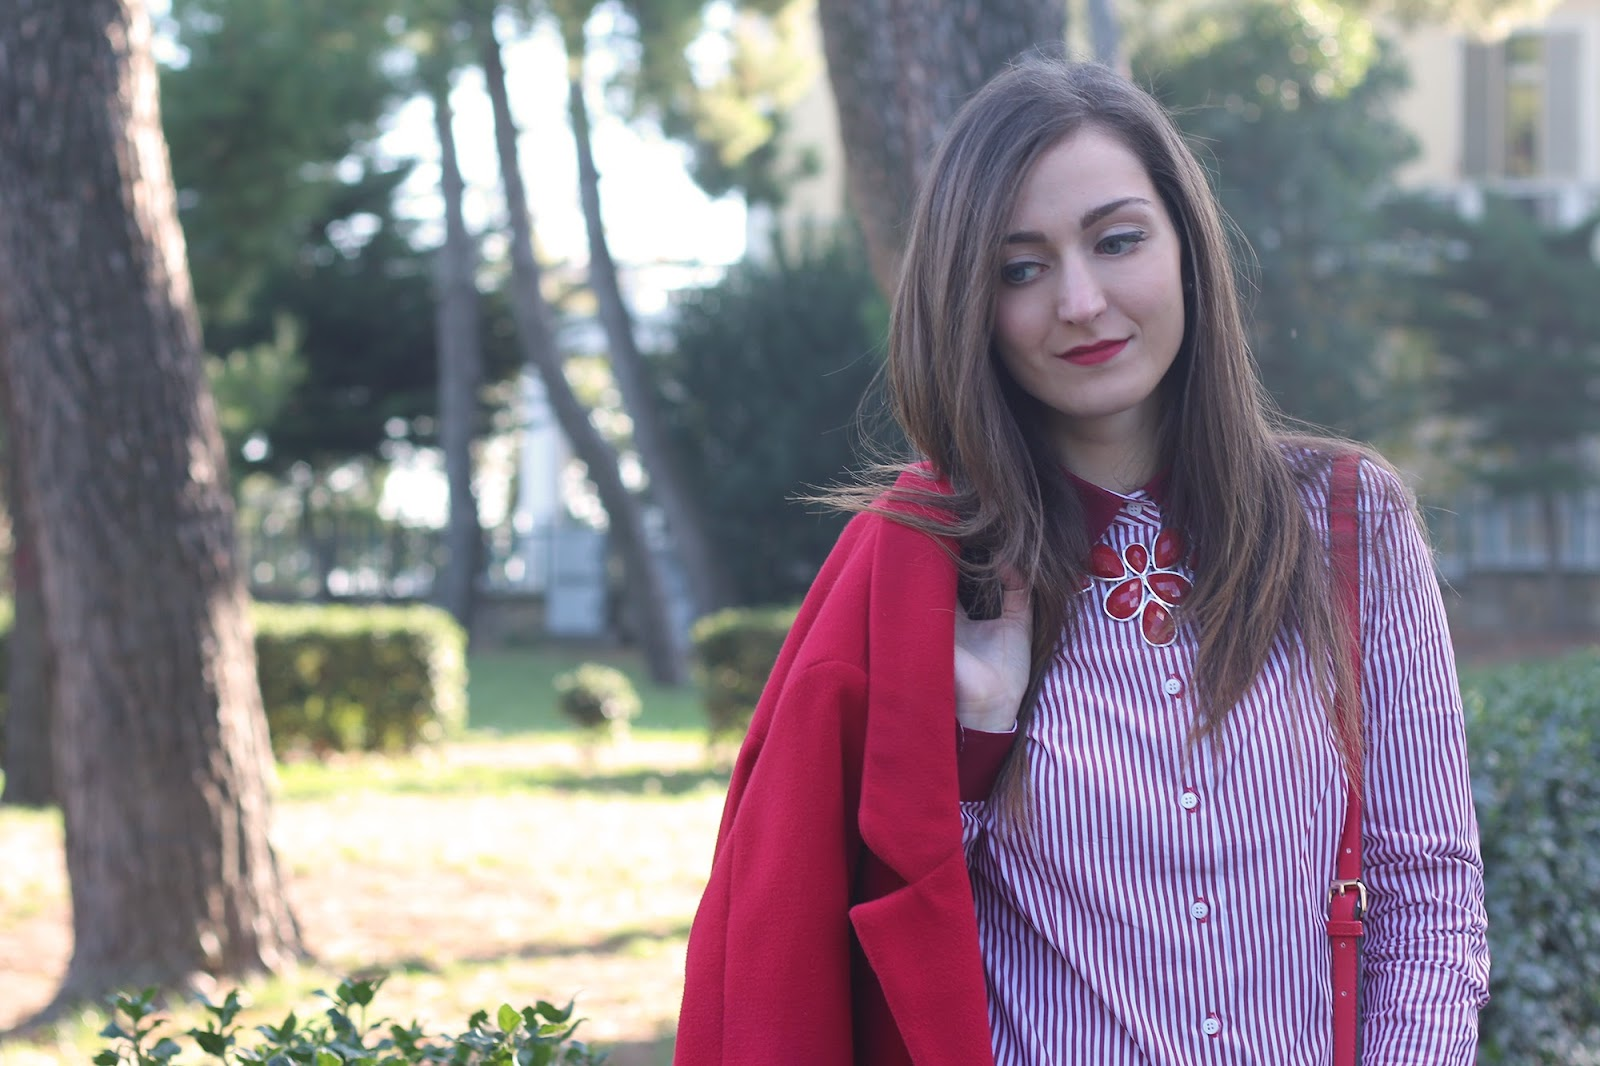 fashion blogger italian italy pescara girl style outfit red coat stripes choices sumissura camicia shirt pumps bow shoes heels janestone necklace jewerly bijoux new book bag